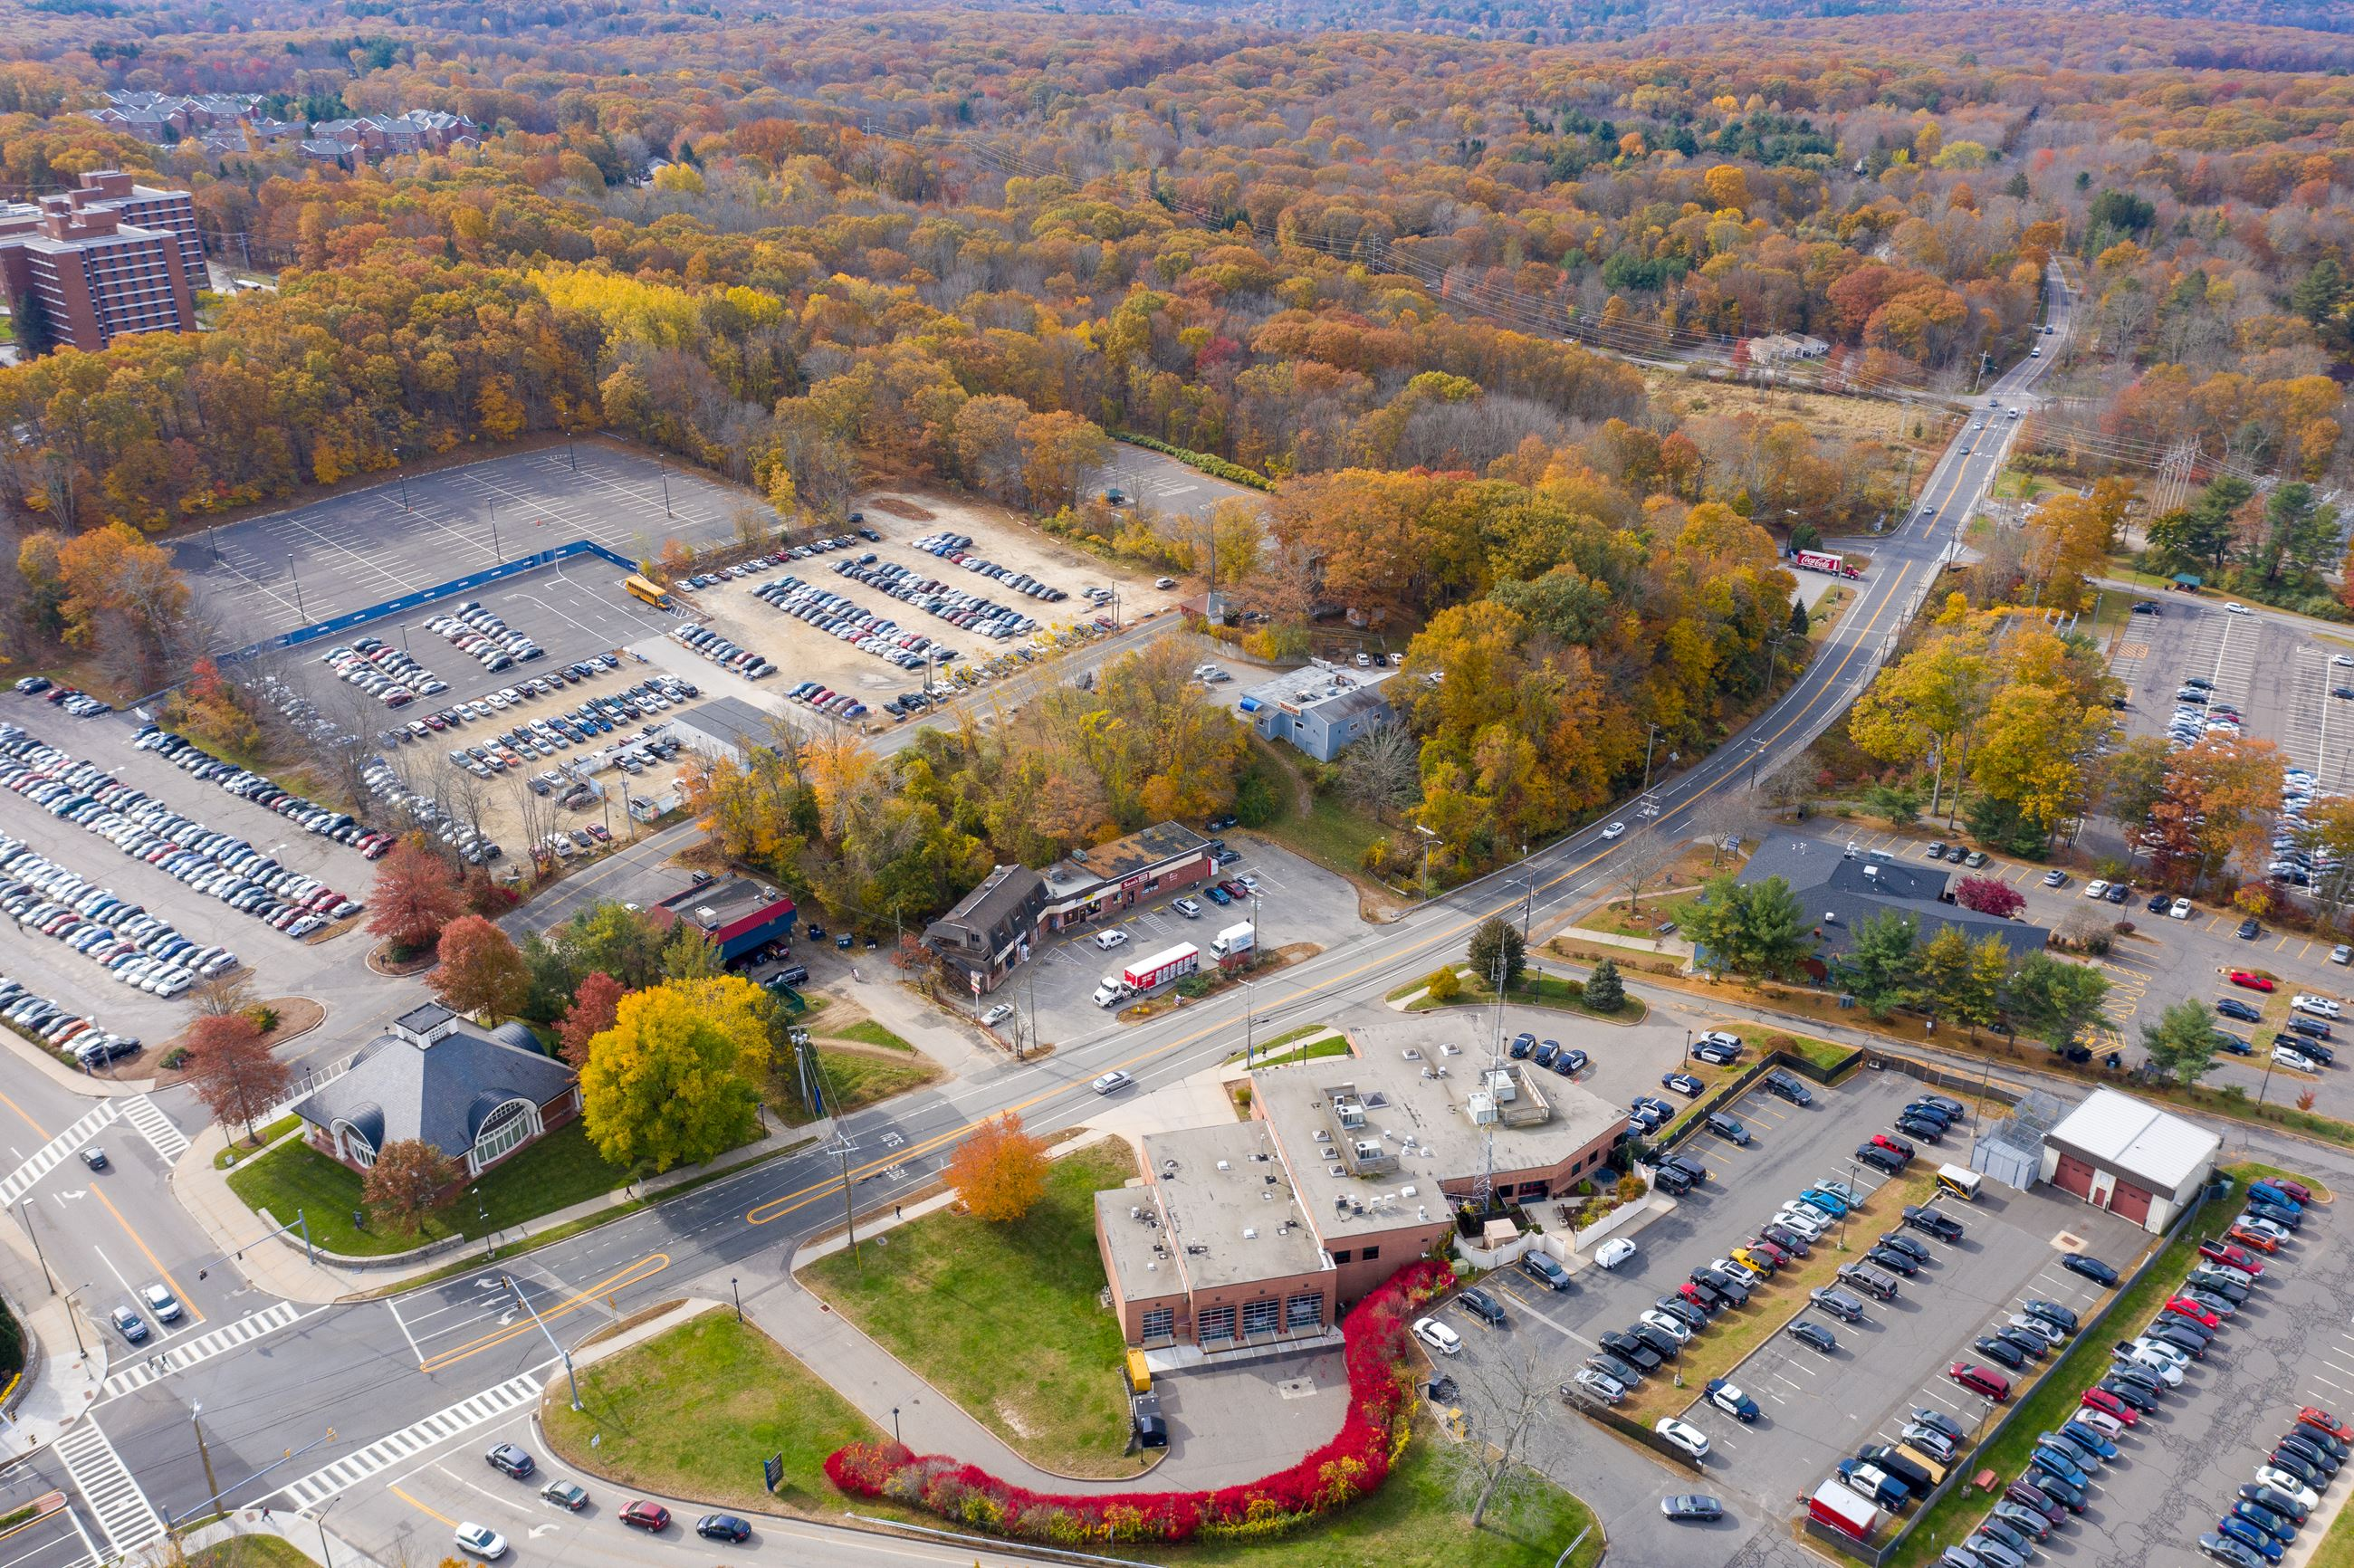 North Eagleville/King Hill Road, Town of Mansfield, CT - Opportunity Zone